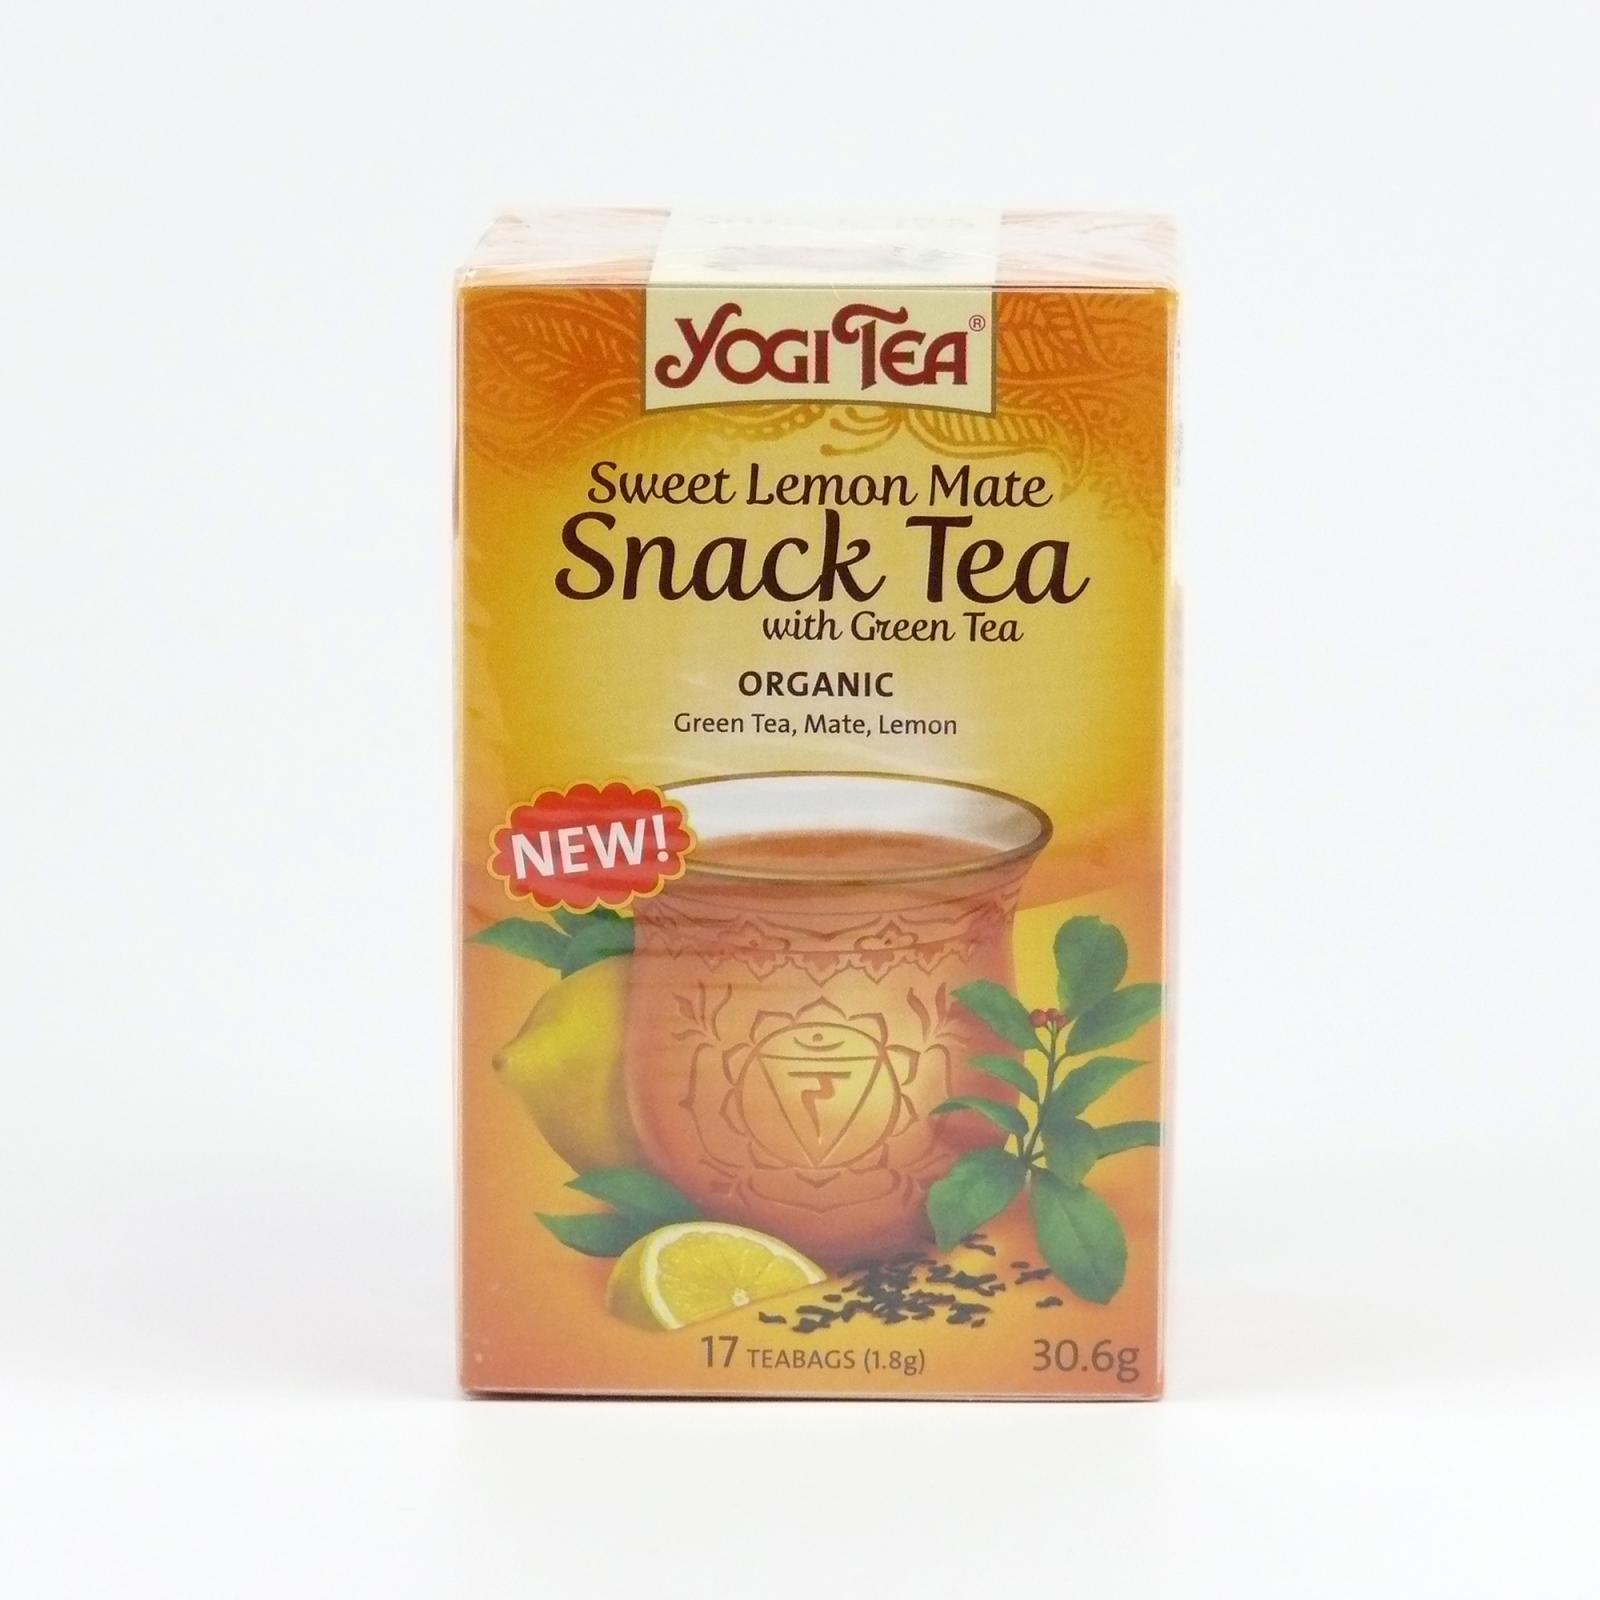 Golden Temple Čaj Yogitea Sweet Lemon Mate, Snack tea 17 ks, 30,6 g